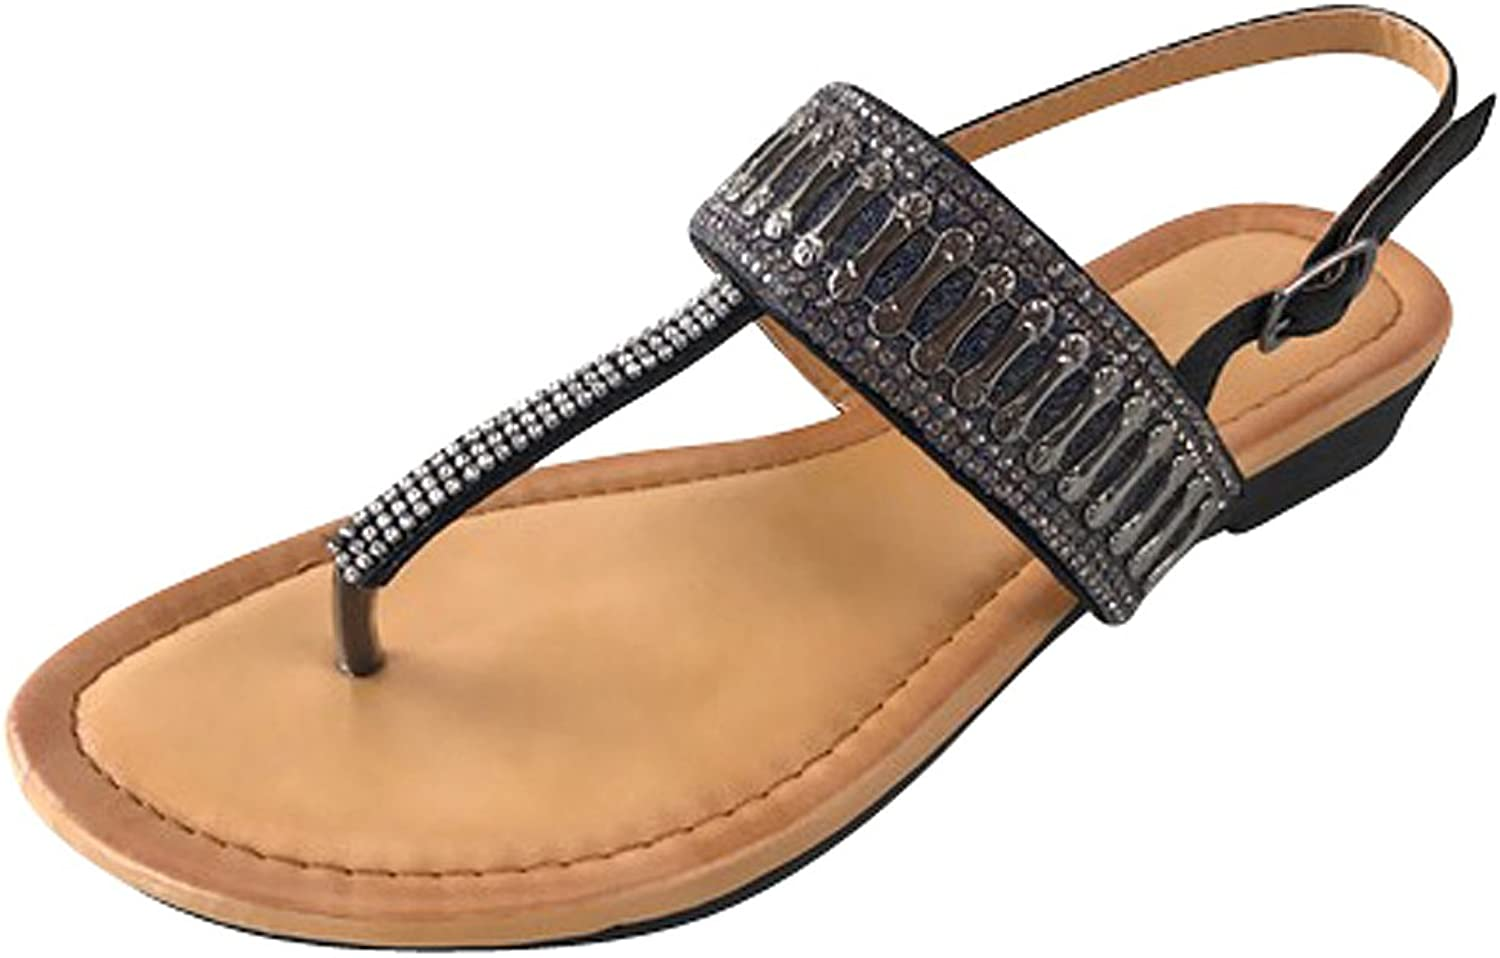 Cambridge Select Women's Crystal Glitter Rhinestone Beaded Thong T-Strap Low Wedge Sandal